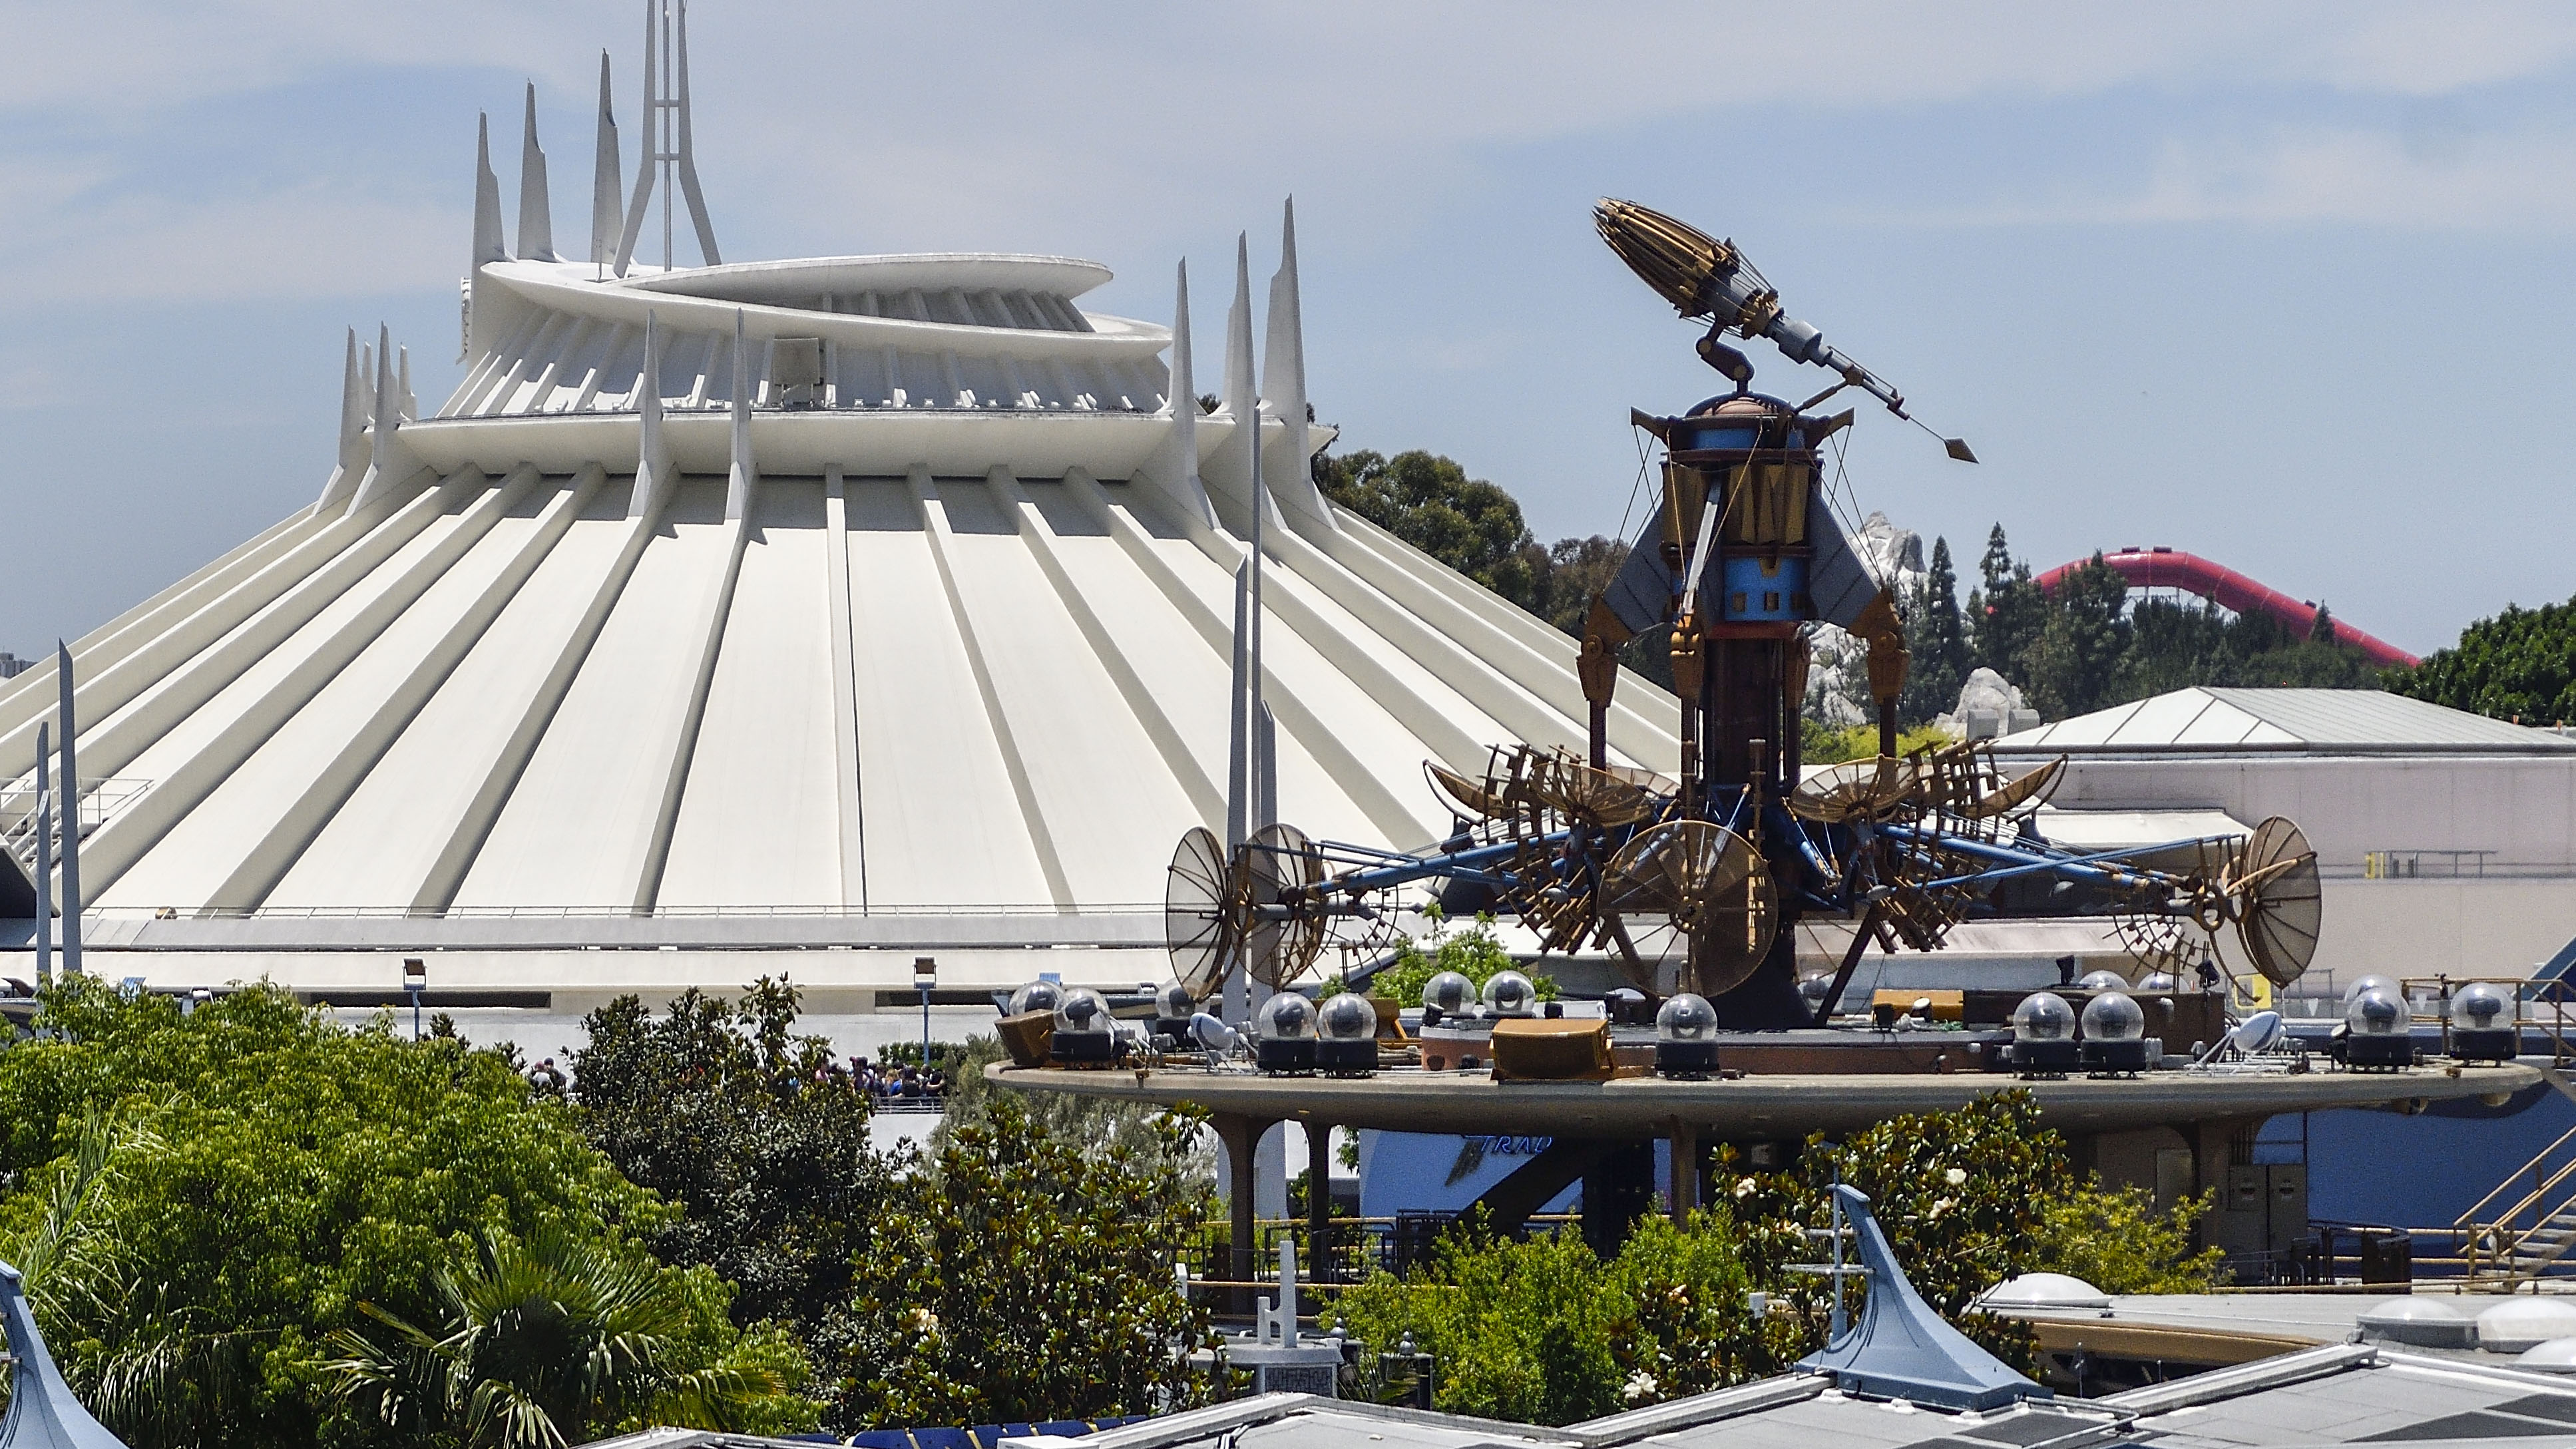 Disneyland guest sues for $3 million after 'violently' striking her head exiting ride